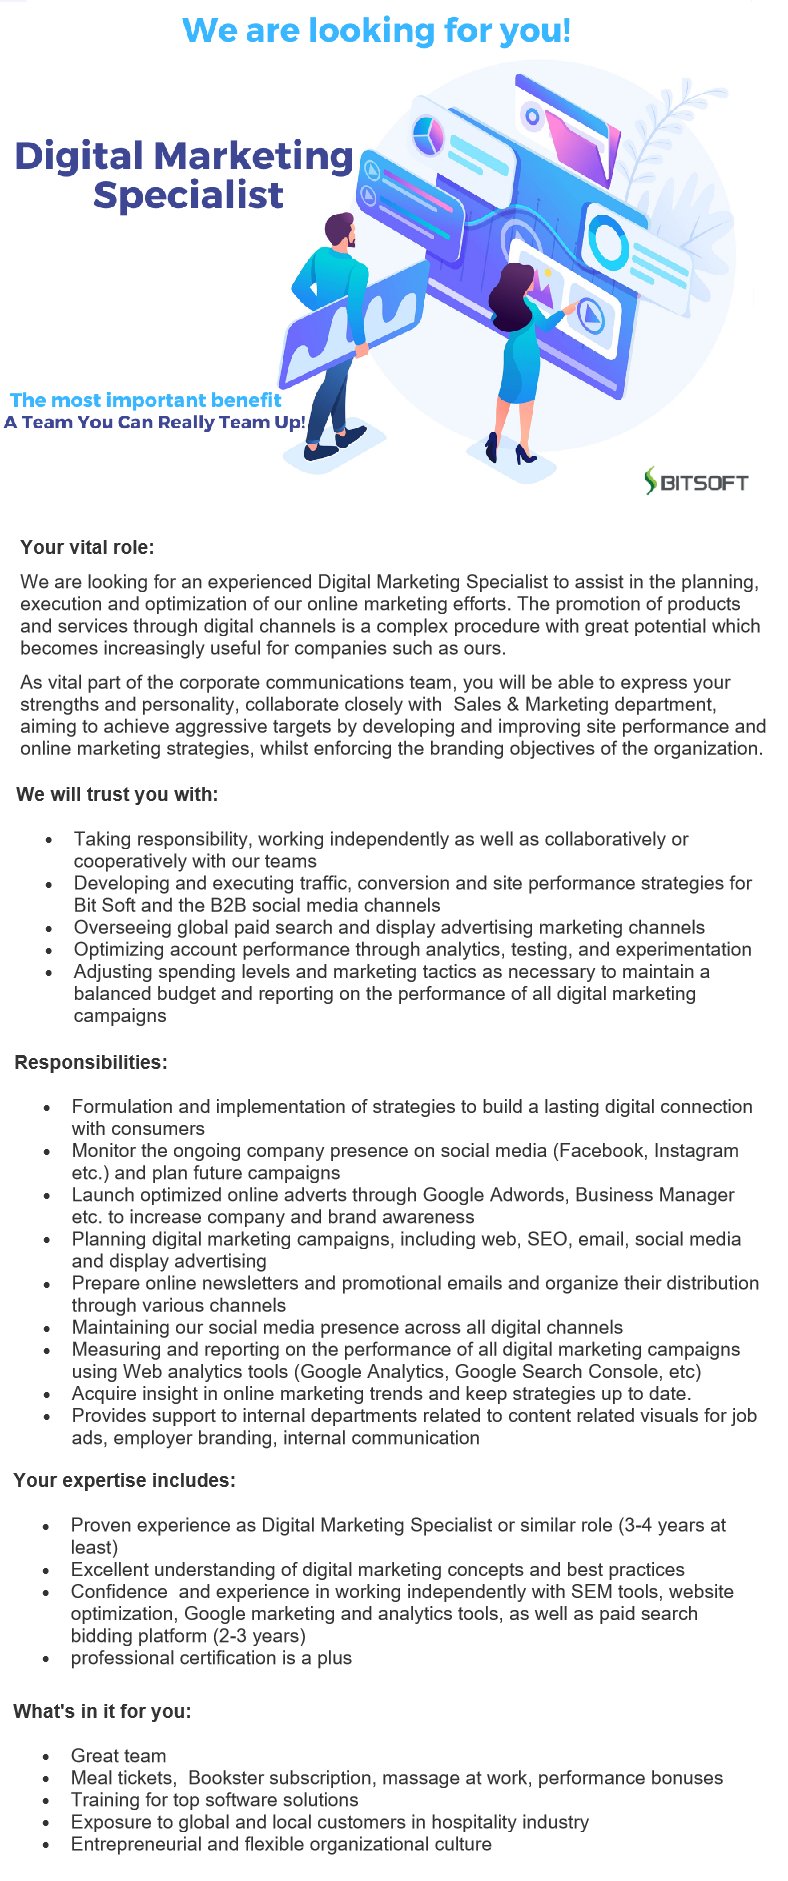 Your vital role: We are looking for an experienced Digital Marketing Specialist to assist in the planning, execution and optimization of our online marketing efforts. The promotion of products and services through digital channels is a complex procedure with great potential which becomes increasingly useful for companies such as ours. As vital part of the corporate communications team, you will be able to express your strengths and personality, collaborate closely with Sales & Marketing department, aiming to achieve aggressive targets by developing and improving site performance and online marketing strategies, whilst enforcing the branding objectives of the organization. We will trust you with: Taking responsibility, working independently as well as collaboratively or cooperatively with our teams Developing and executing traffic, conversion and site performance strategies for Bit Soft and the B2B social media channels Overseeing global paid search and display advertising marketing channels Optimizing account performance through analytics, testing, and experimentationAdjusting spending levels and marketing tactics as necessary to maintain a balanced budget and reporting on the performance of all digital marketing campaigns Formulation and implementation of strategies to build a lasting digital connection with consumers Monitor the ongoing company presence on social media (Facebook, Instagram etc.) and plan future campaigns Launch optimized online adverts through Google Adwords, Business Manager etc. to increase company and brand awareness Planning digital marketing campaigns, including web, SEO, email, social media and display advertising Prepare online newsletters and promotional emails and organize their distribution through various channels Maintaining our social media presence across all digital channels Measuring and reporting on the performance of all digital marketing campaigns using Web analytics tools (Google Analytics, Google Search Console, etc) Acquire i